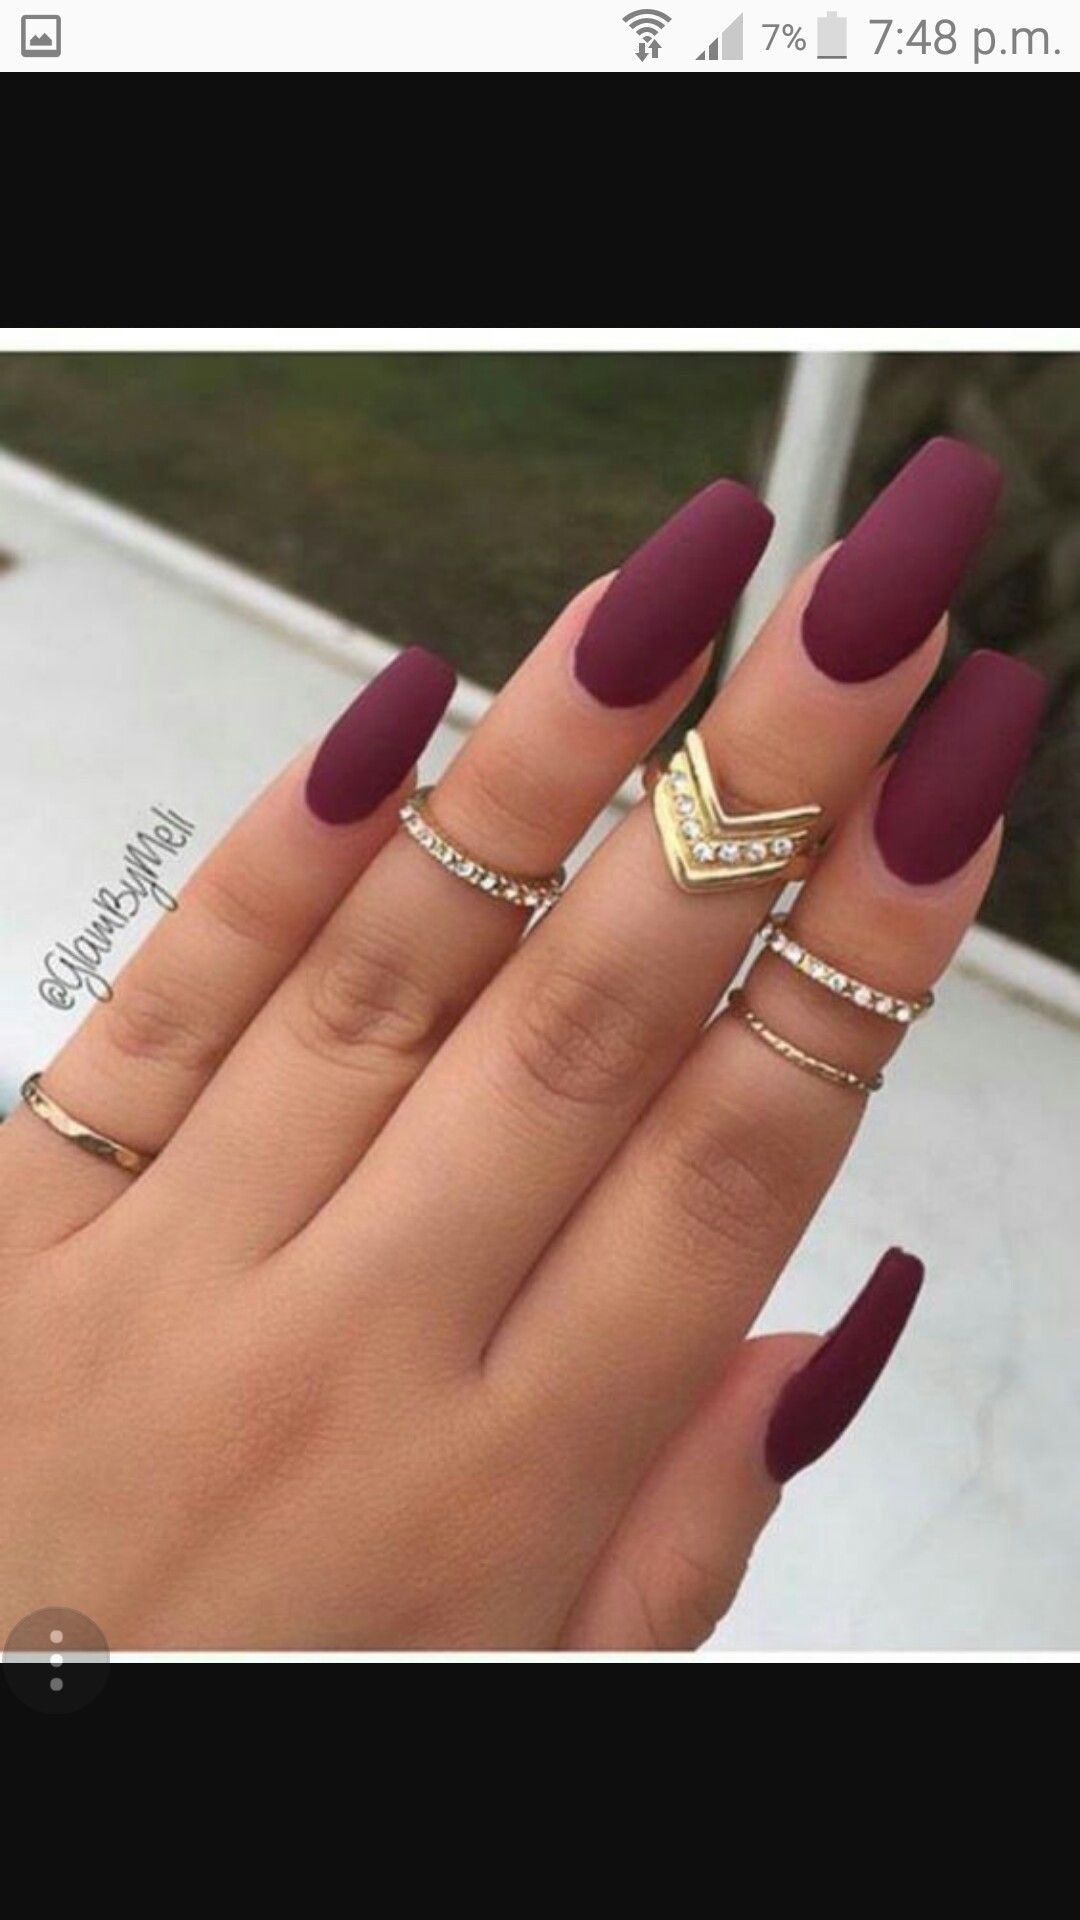 Long Maroon Coffin Shaped Trendy Nails Matte Nails Design Maroon Nails Coffin Nails Designs